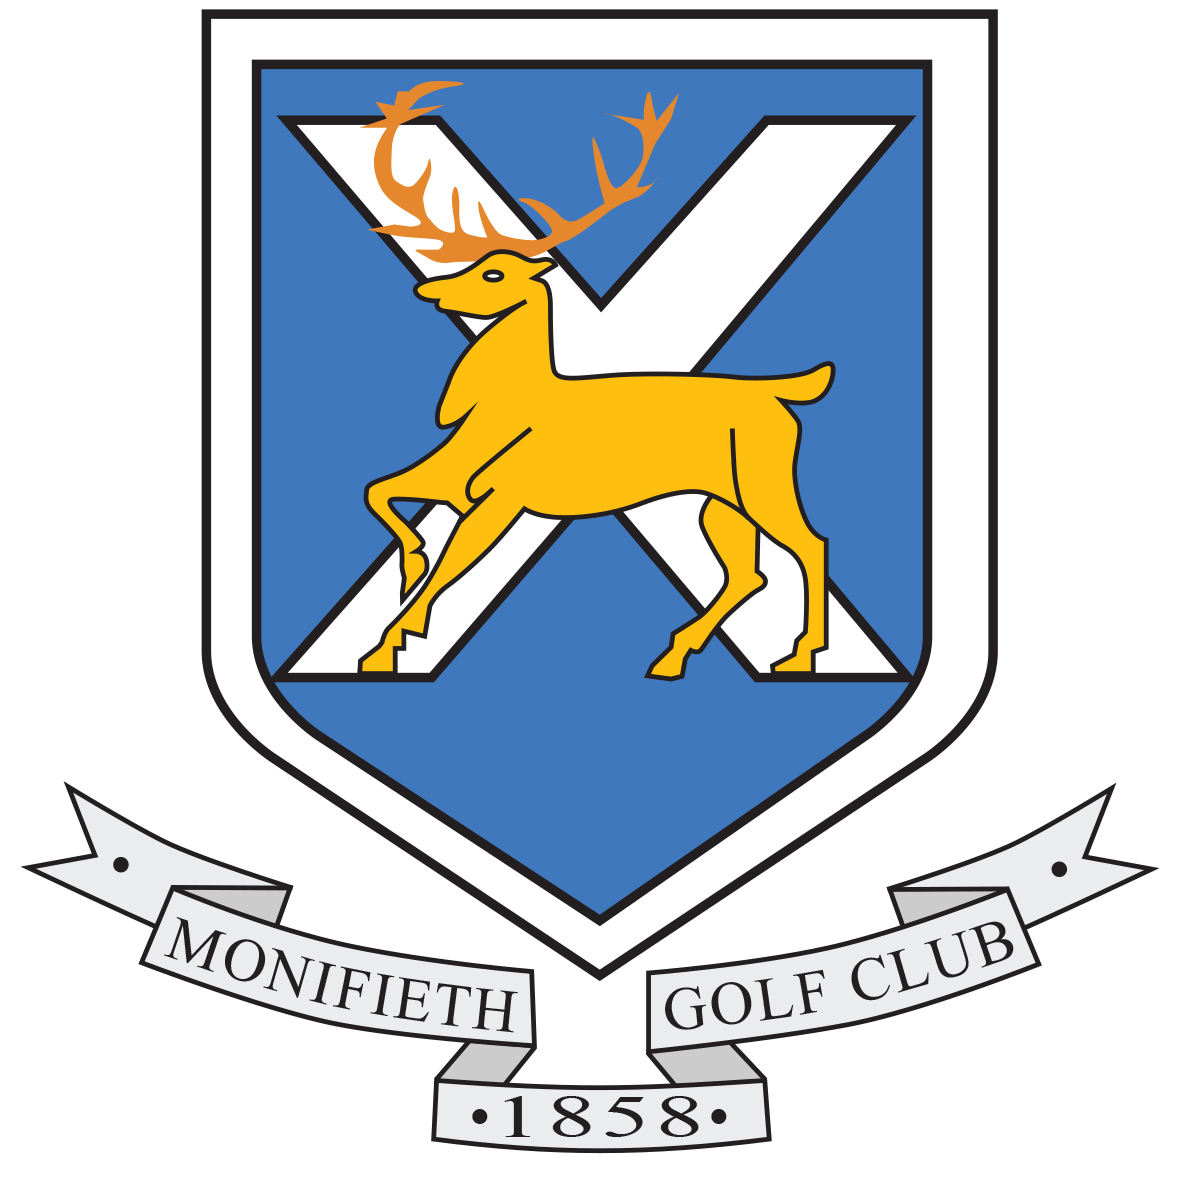 Monifieth Golf Club